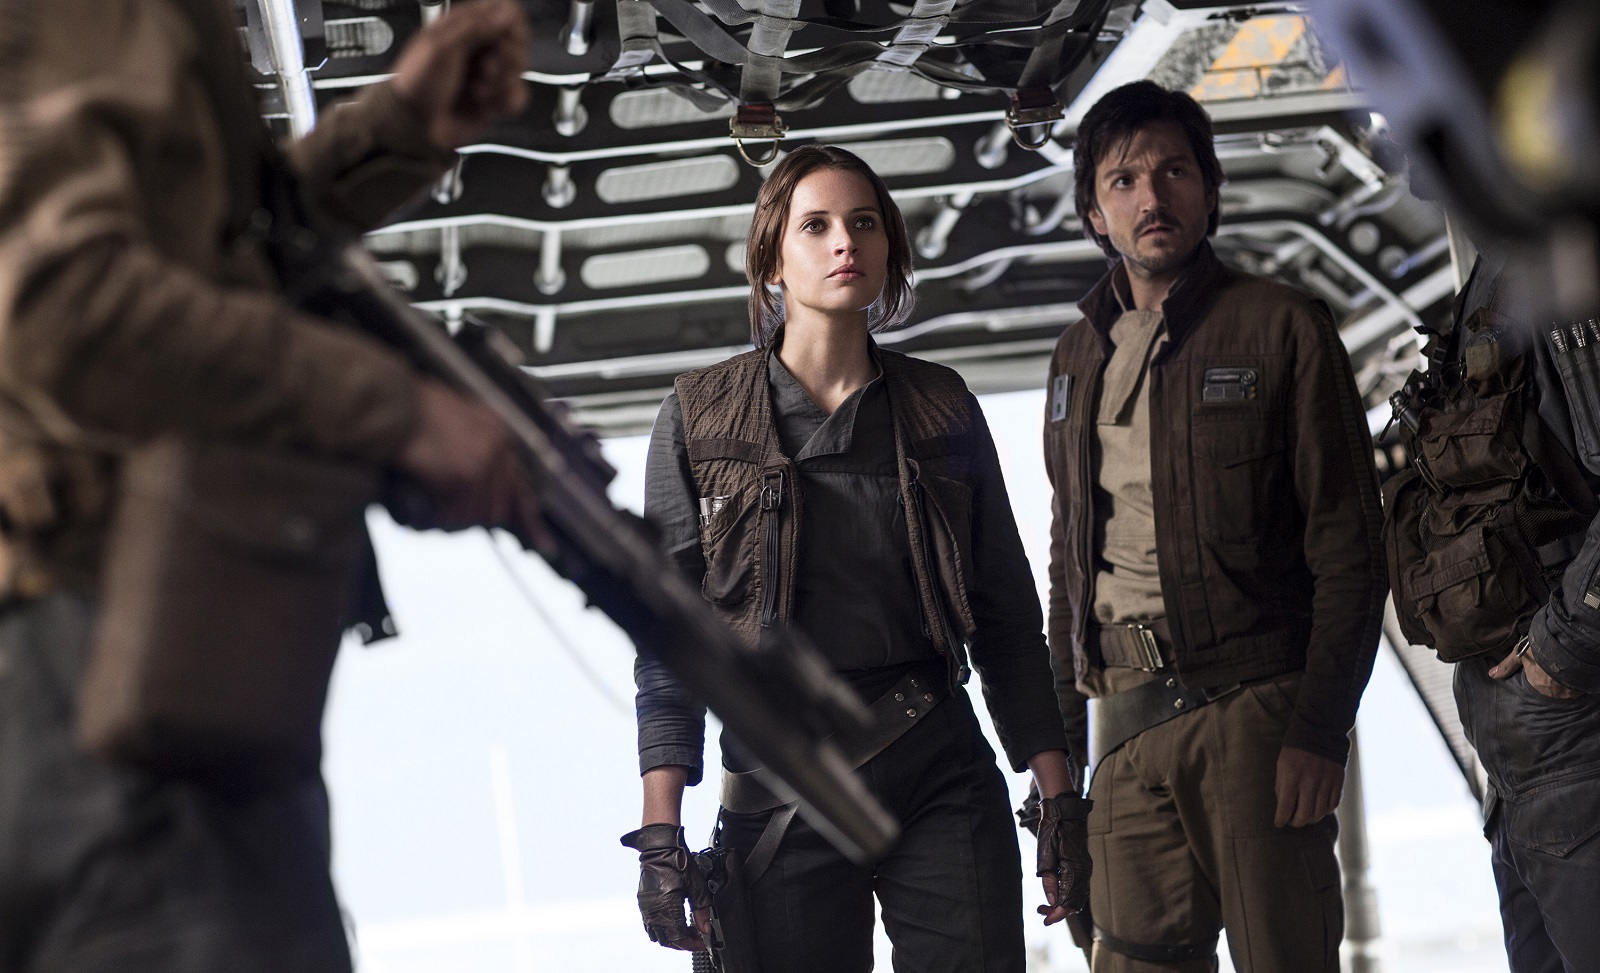 Jyn Erso (Felicity Jones) and Cassian Andor (Diego Luna) in 'Rogue One: A Star Wars Story.' (Jonathan Olley, Lucasfilm-Walt Disney Studios Motion Pictures)